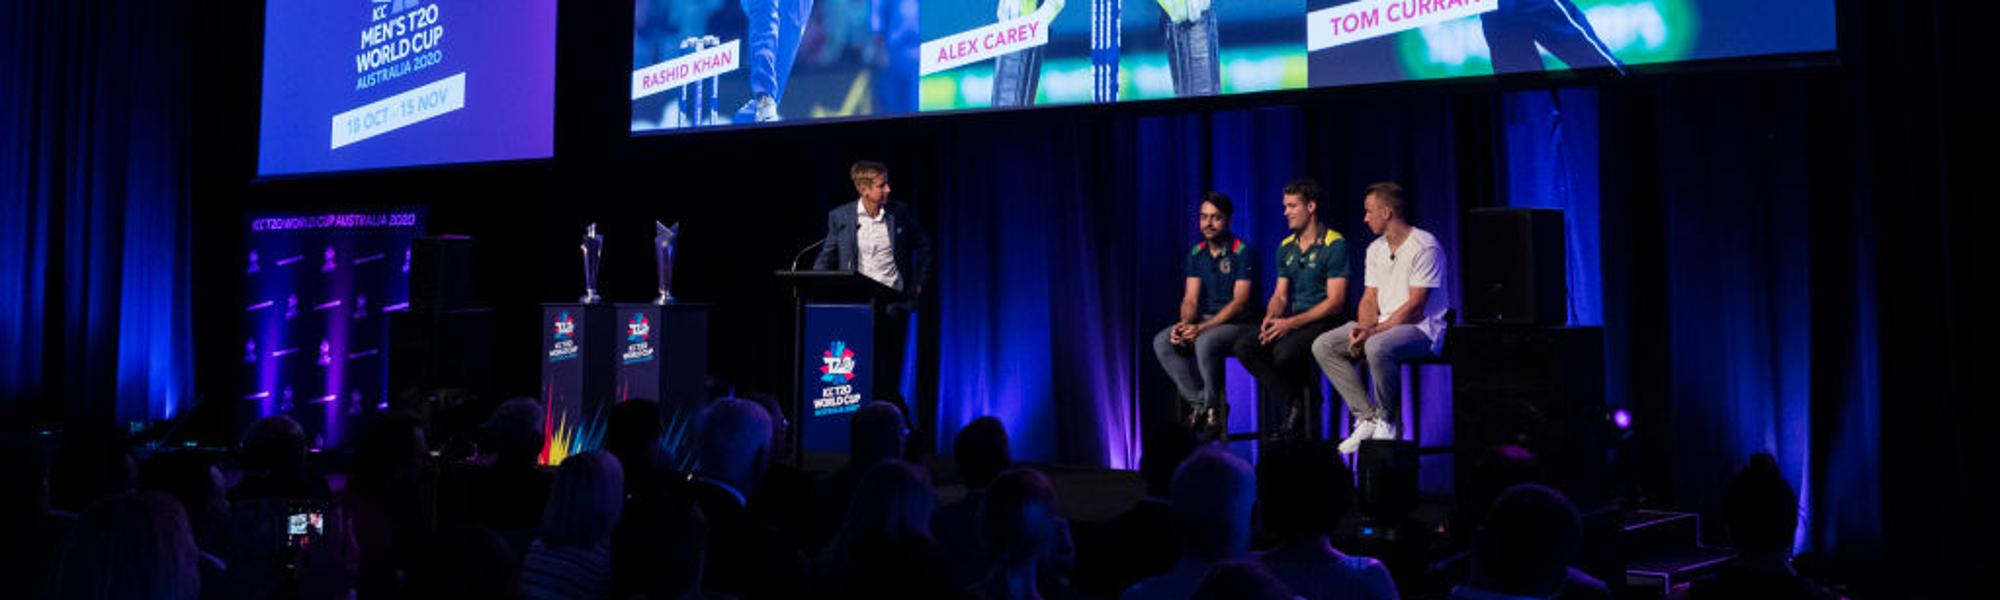 ICC T20 World Cup 2020 fixture launch